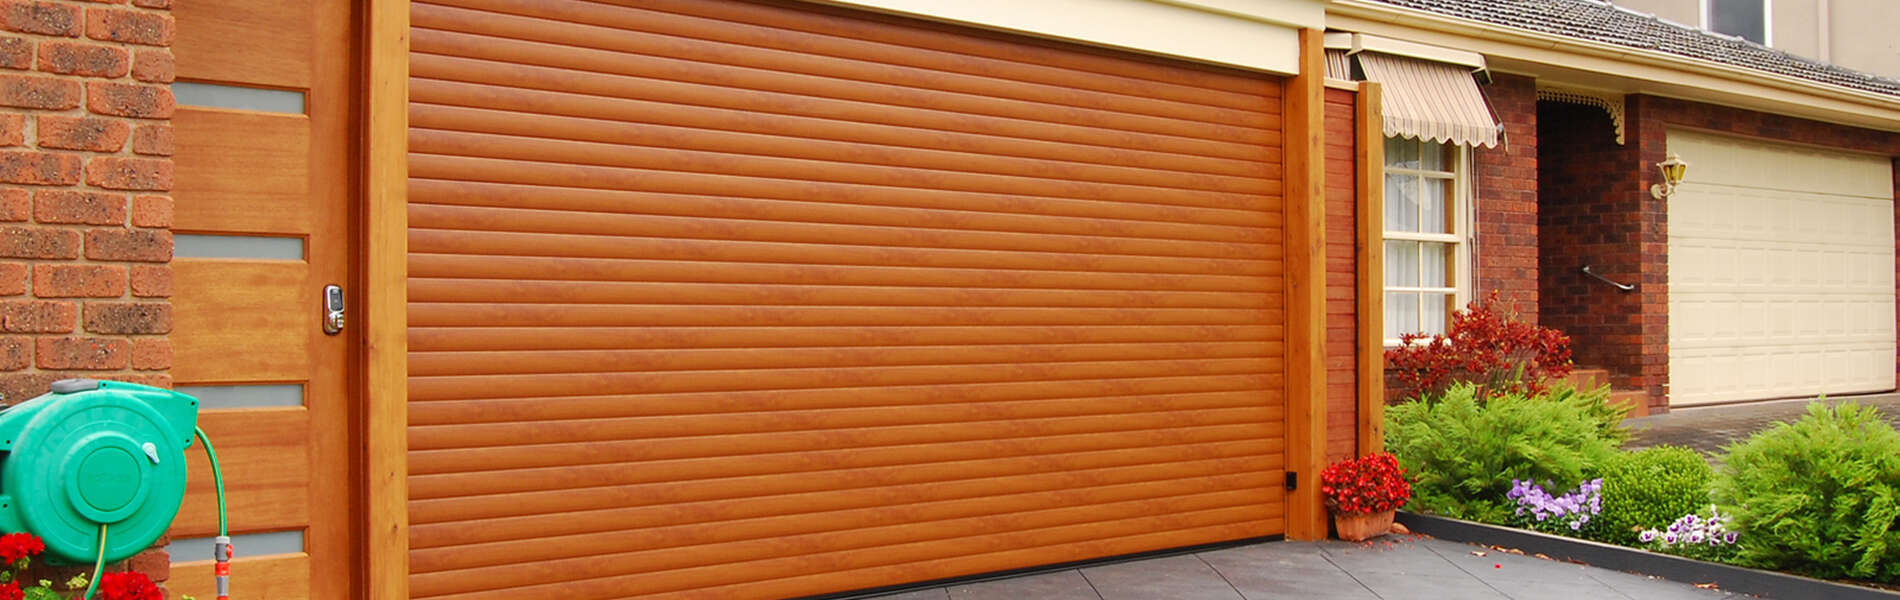 RollMatic Garage Doors